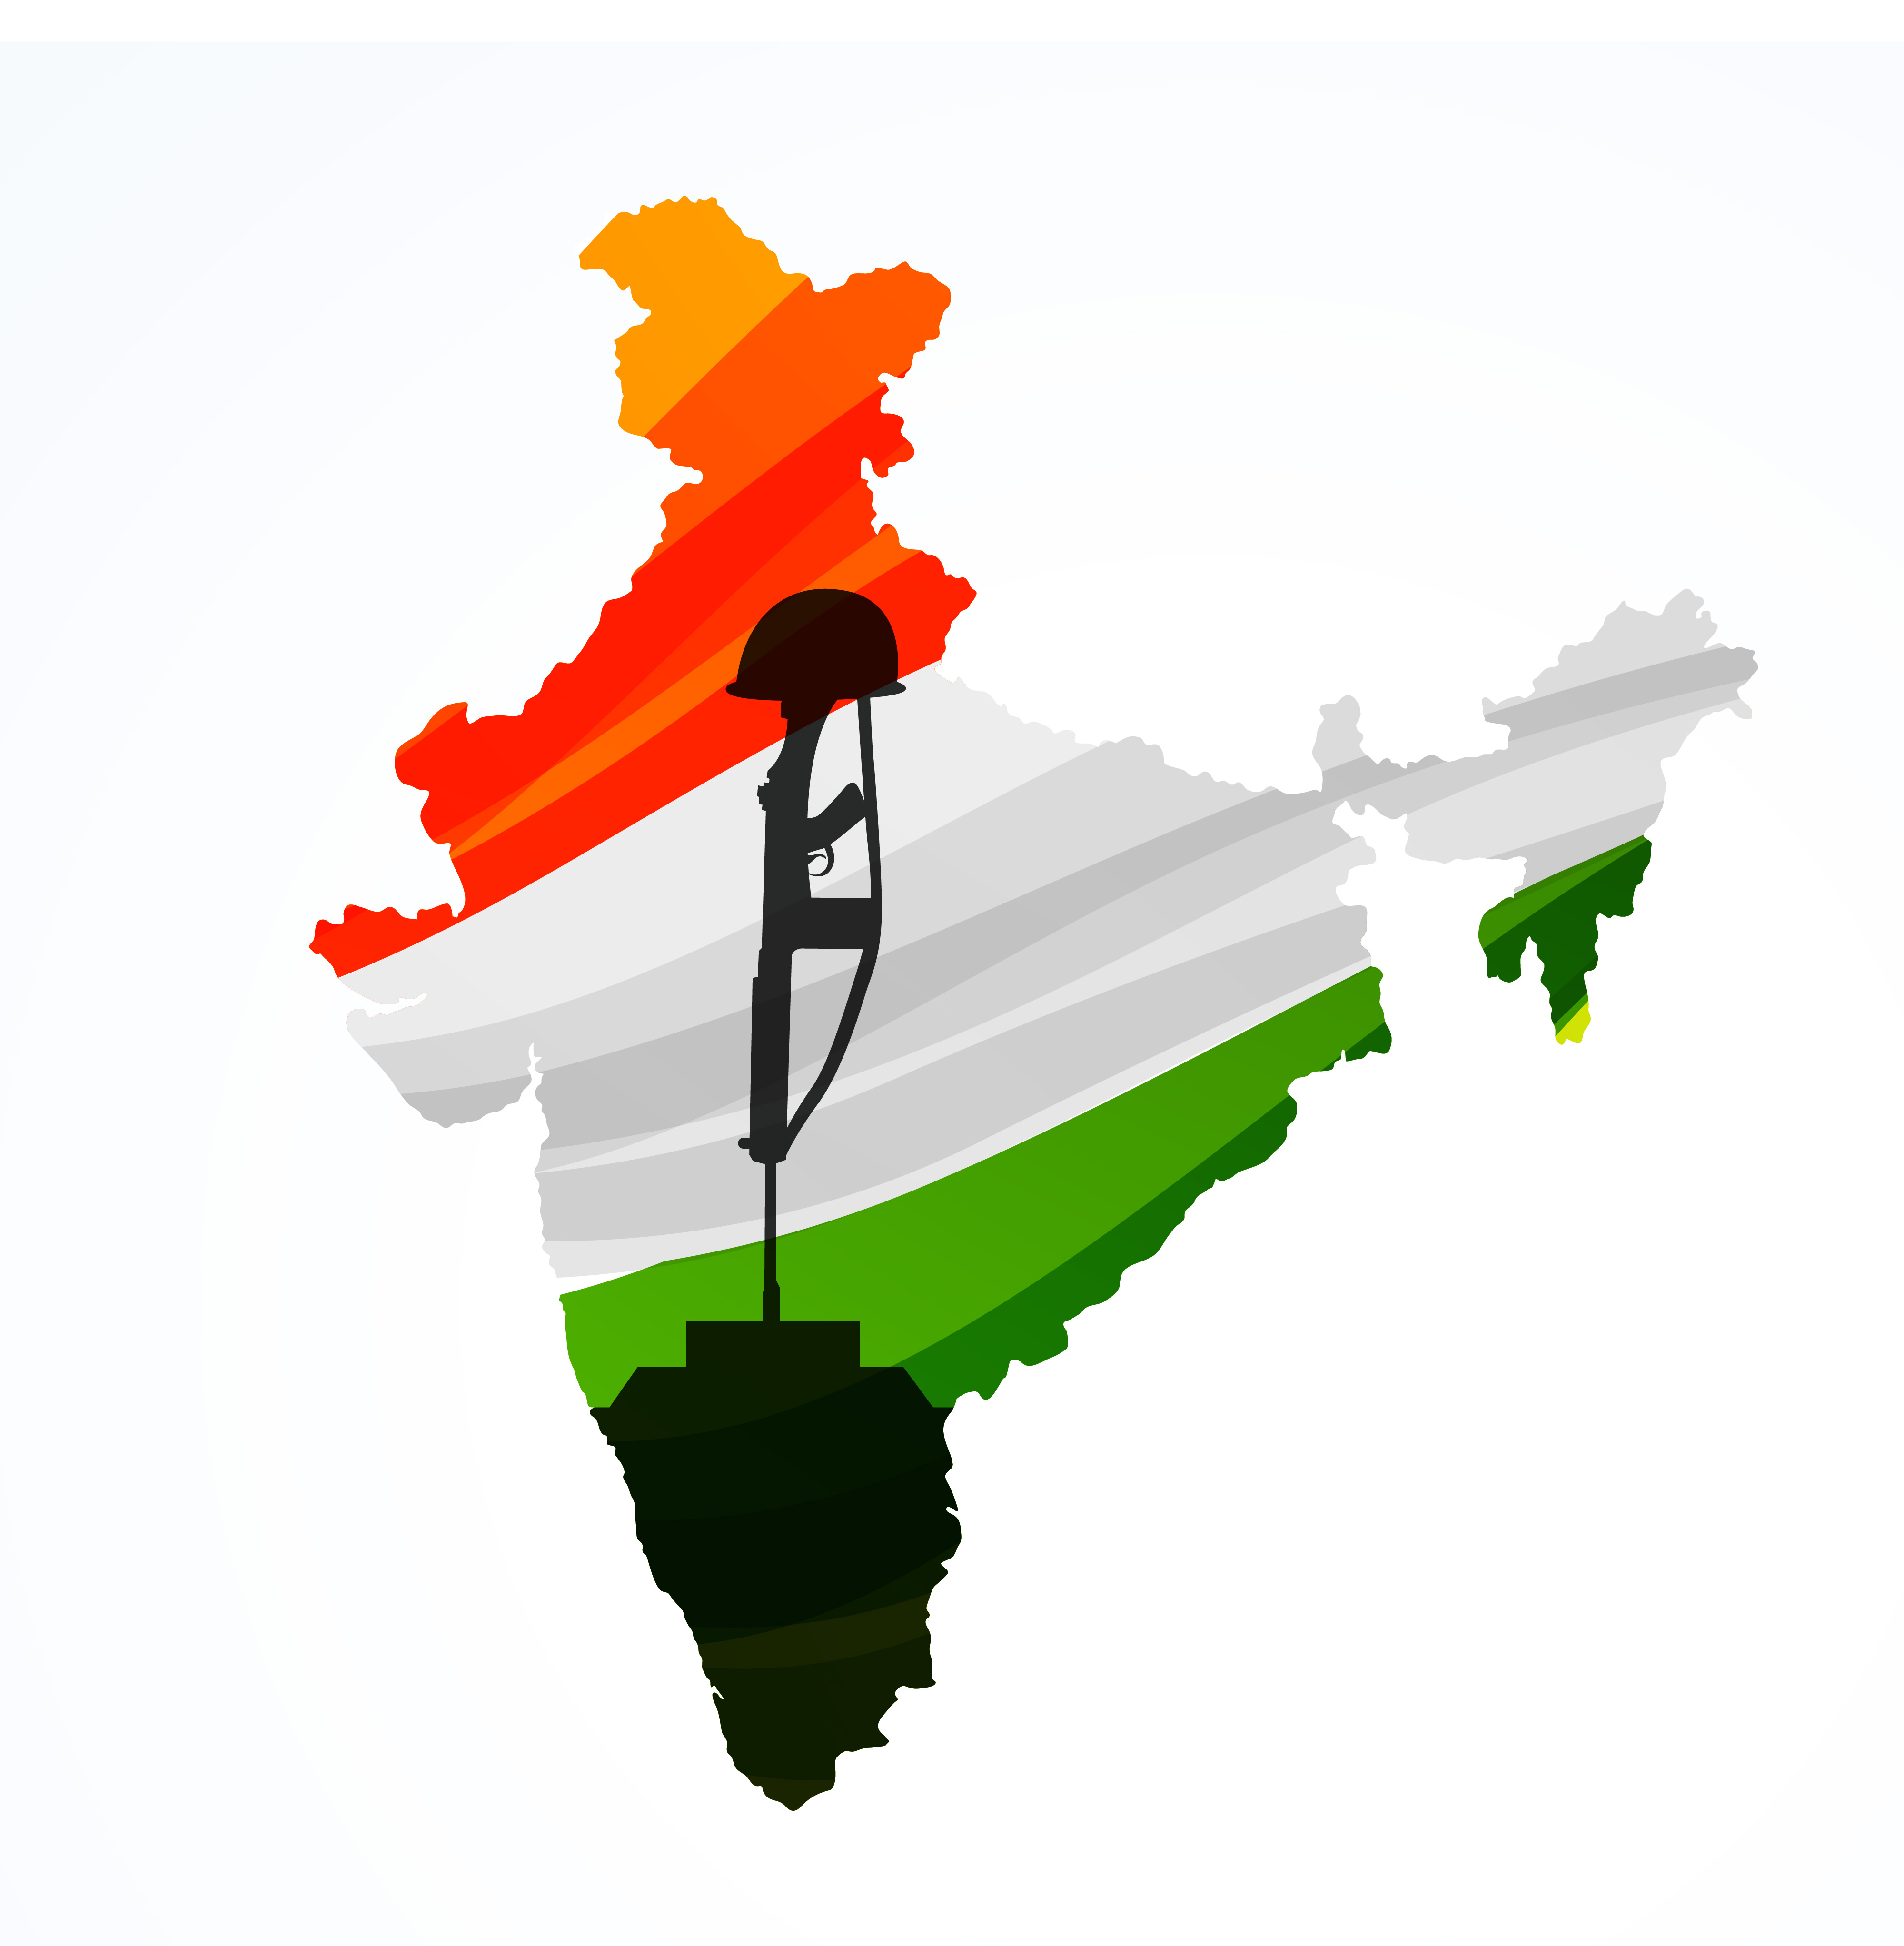 Map Of India With Amar Jyoti Vector Design Illustration